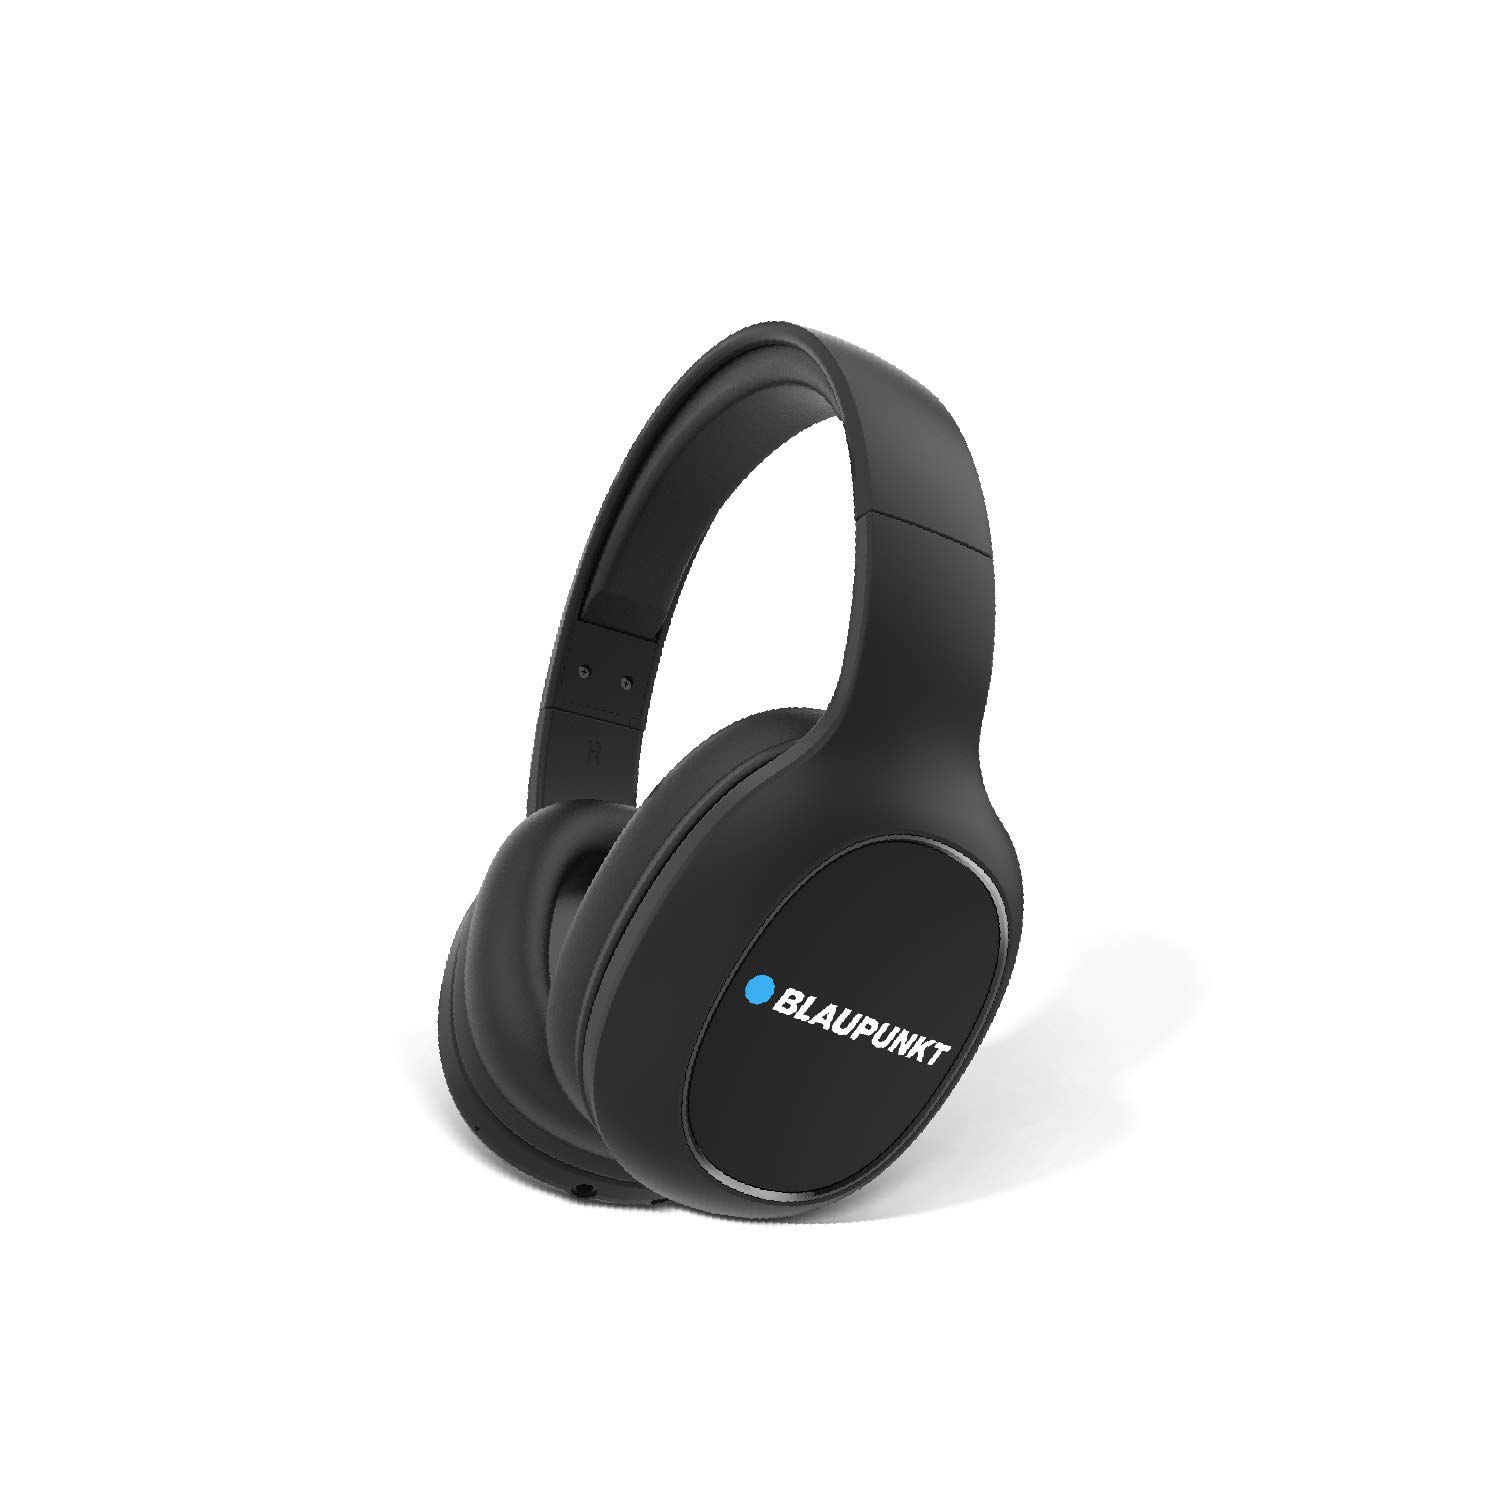 Blaupunkt BH21 Bluetooth Over-The -Ear Wireless Headphone